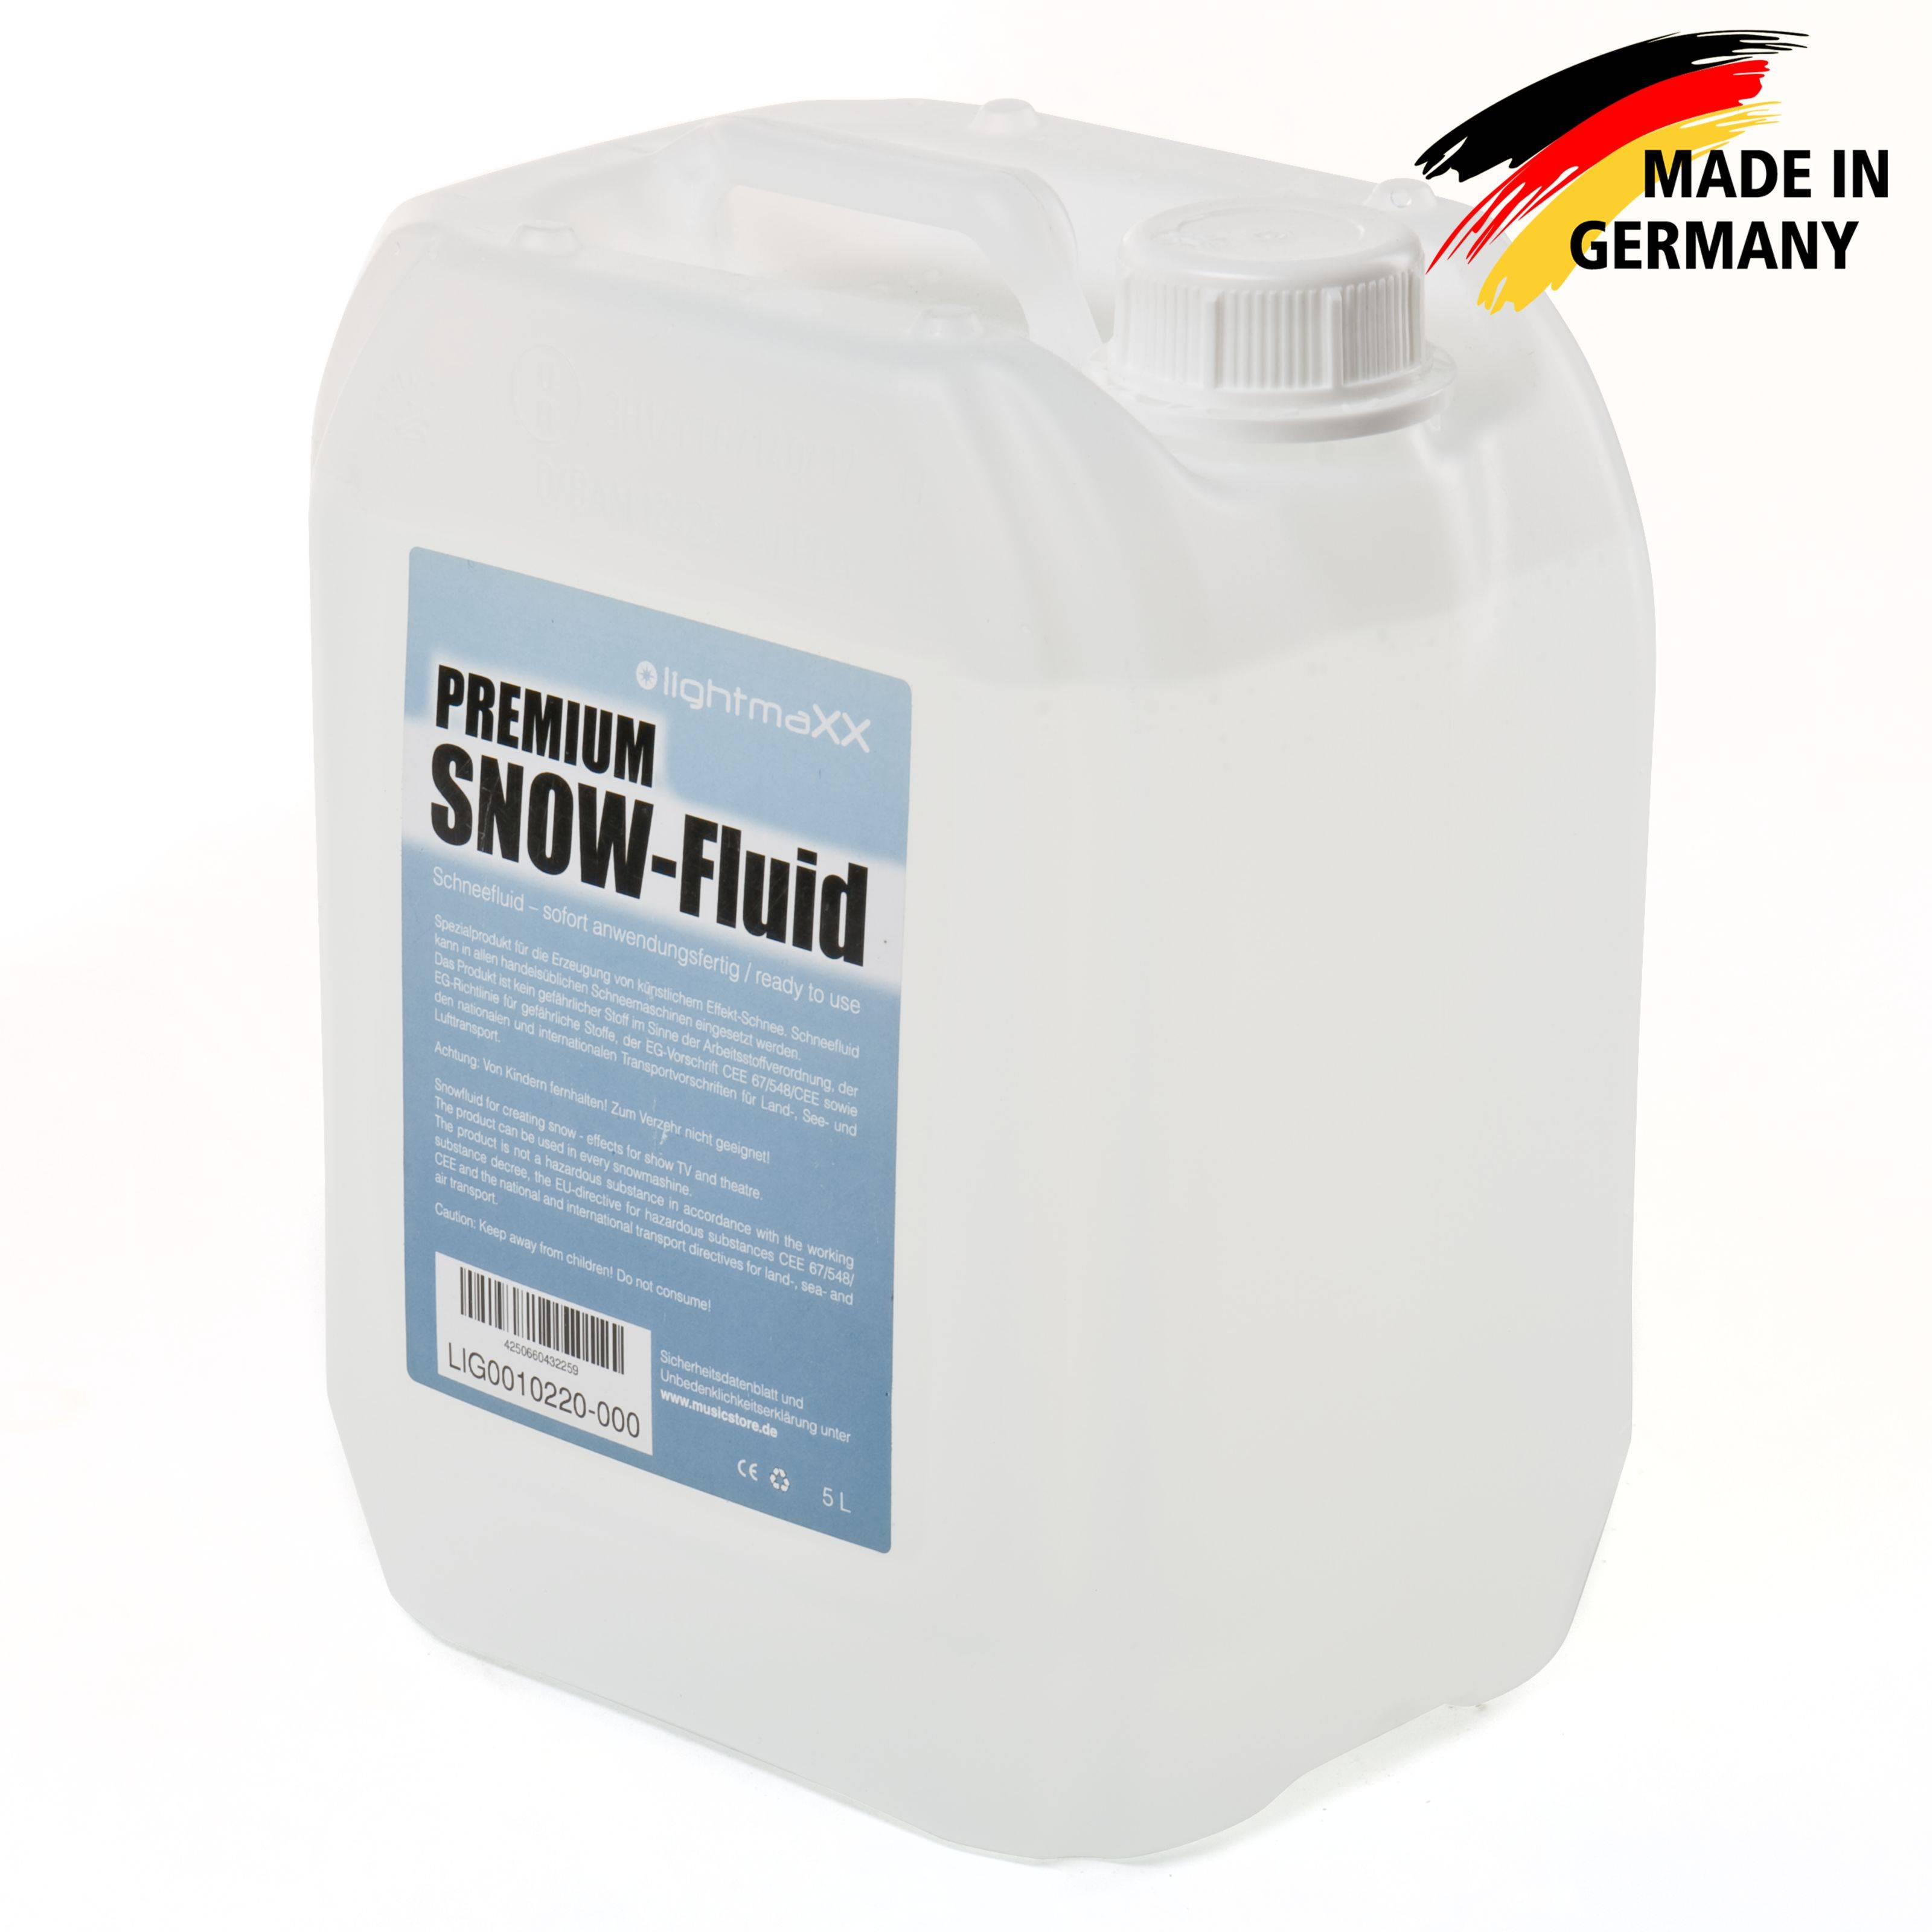 lightmaXX Premium SNOW FLUID 5L, liquide neige, 1l=2,58 EUR